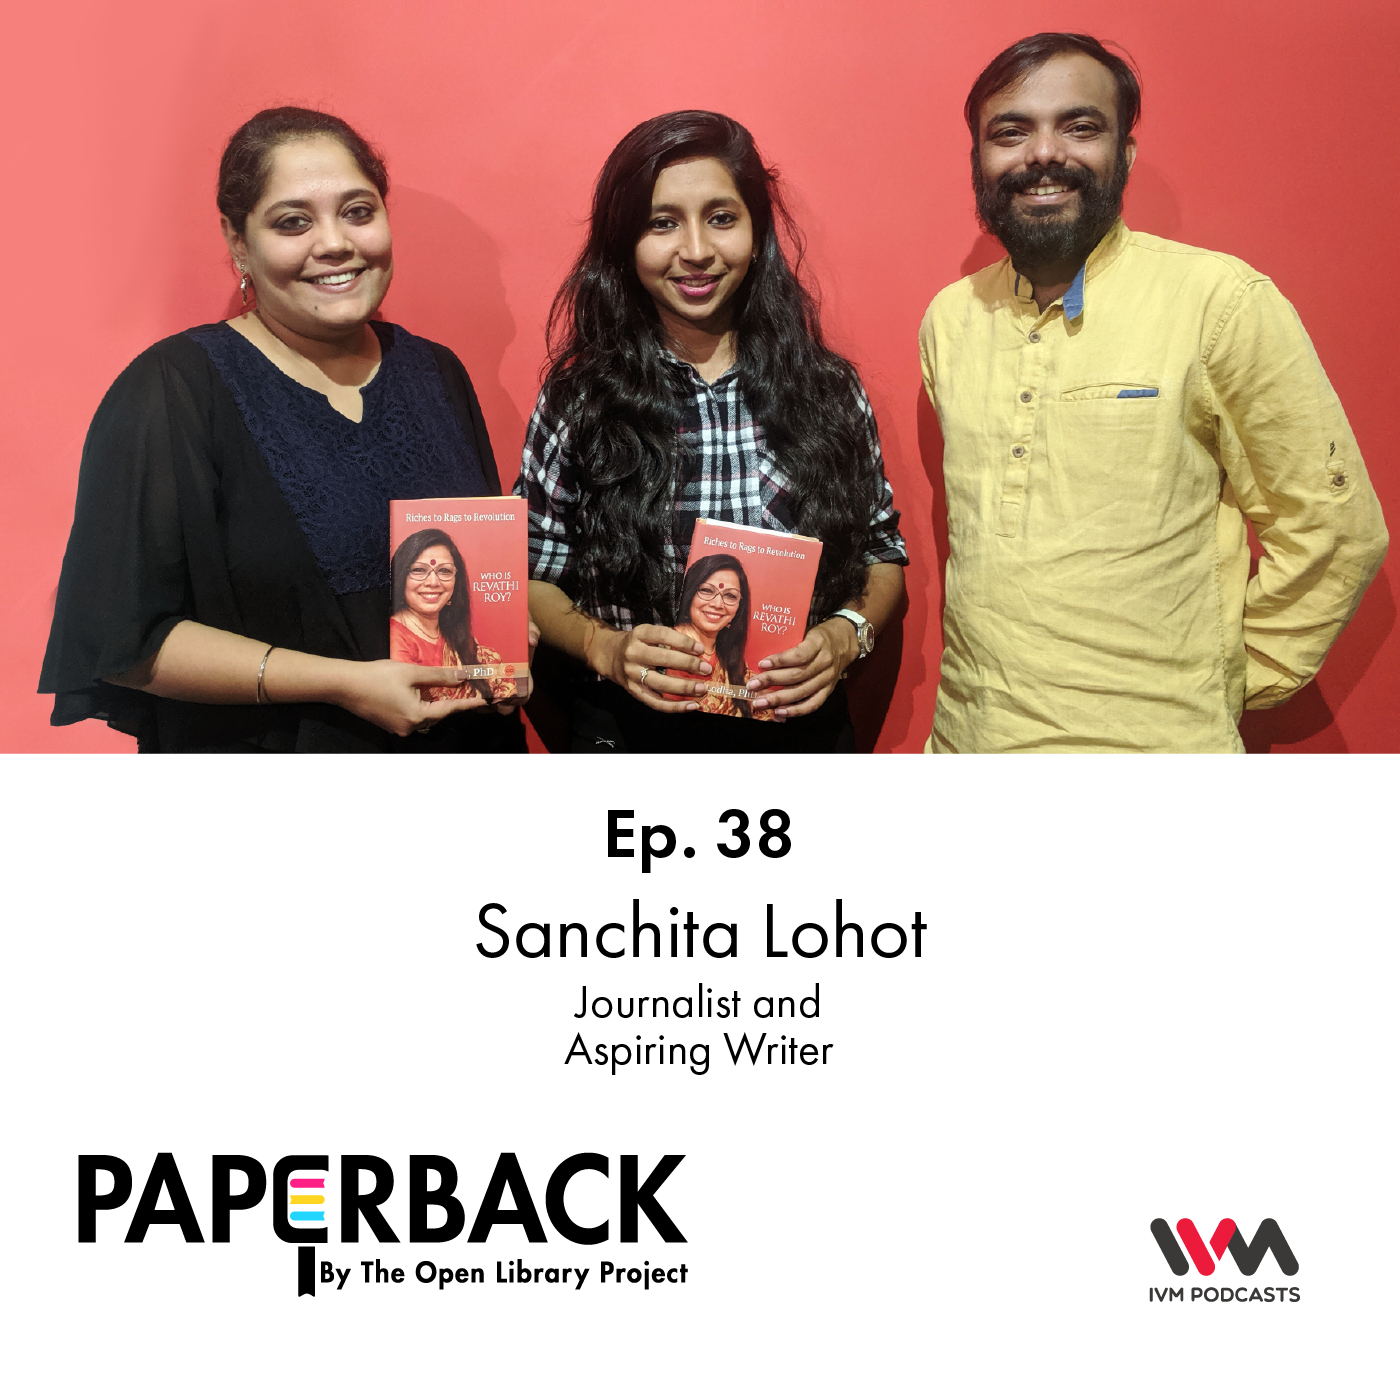 Ep. 38: Sanchita Lohot